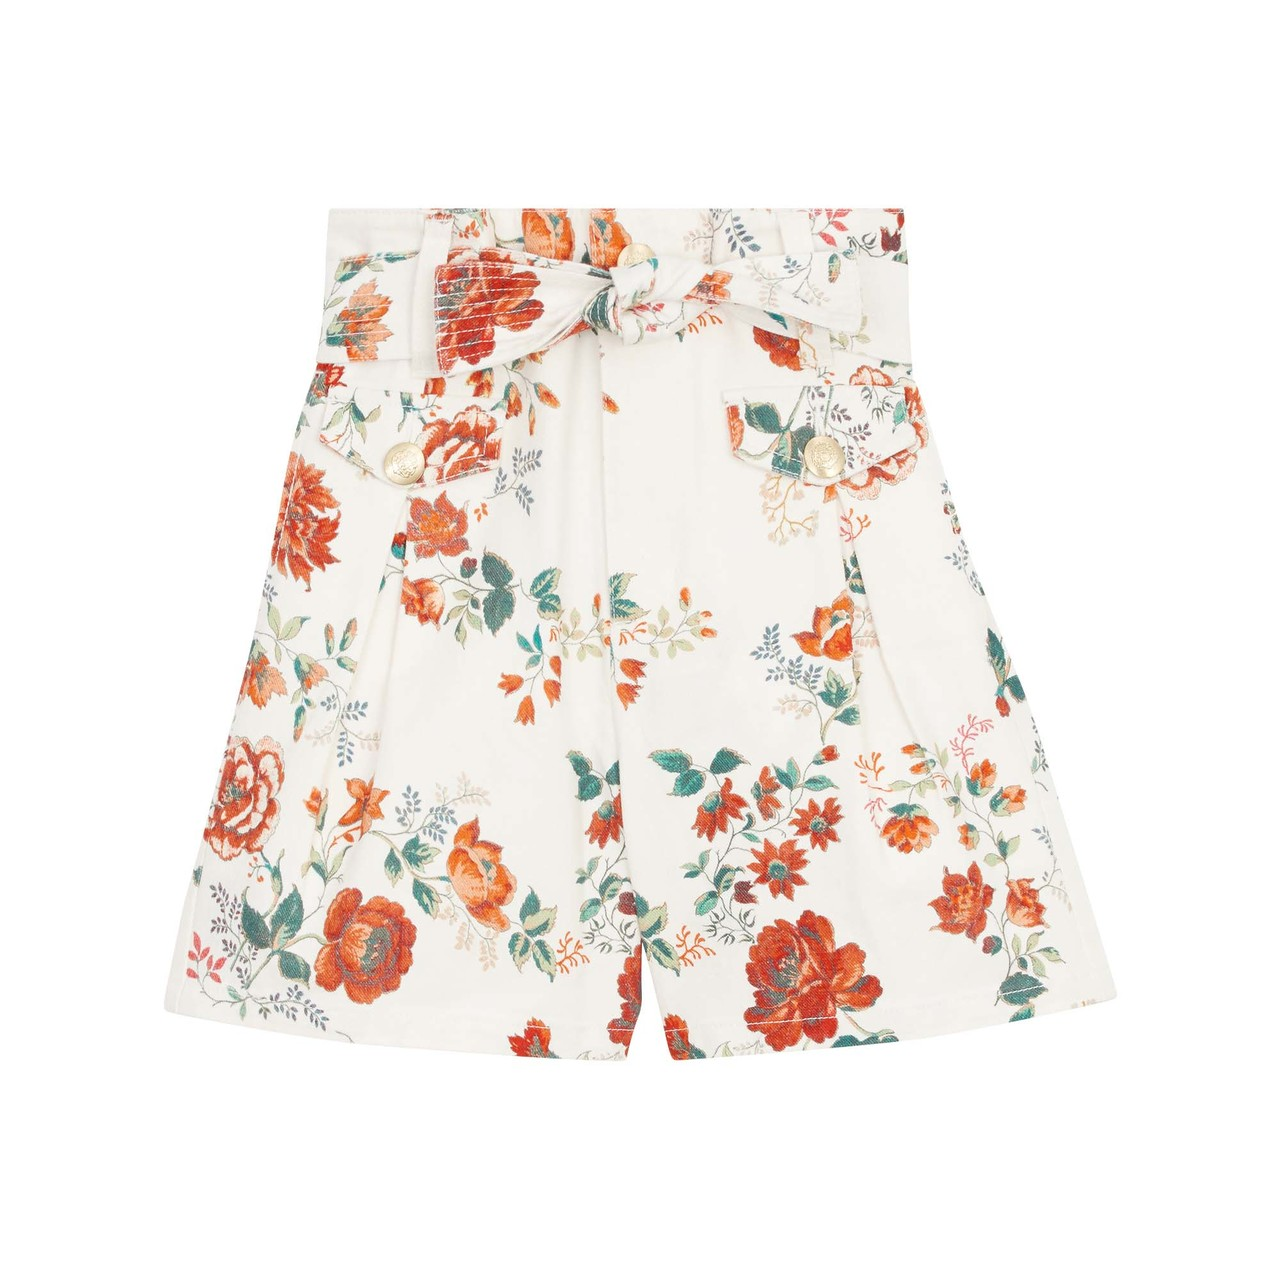 Maje Iflor Shorts